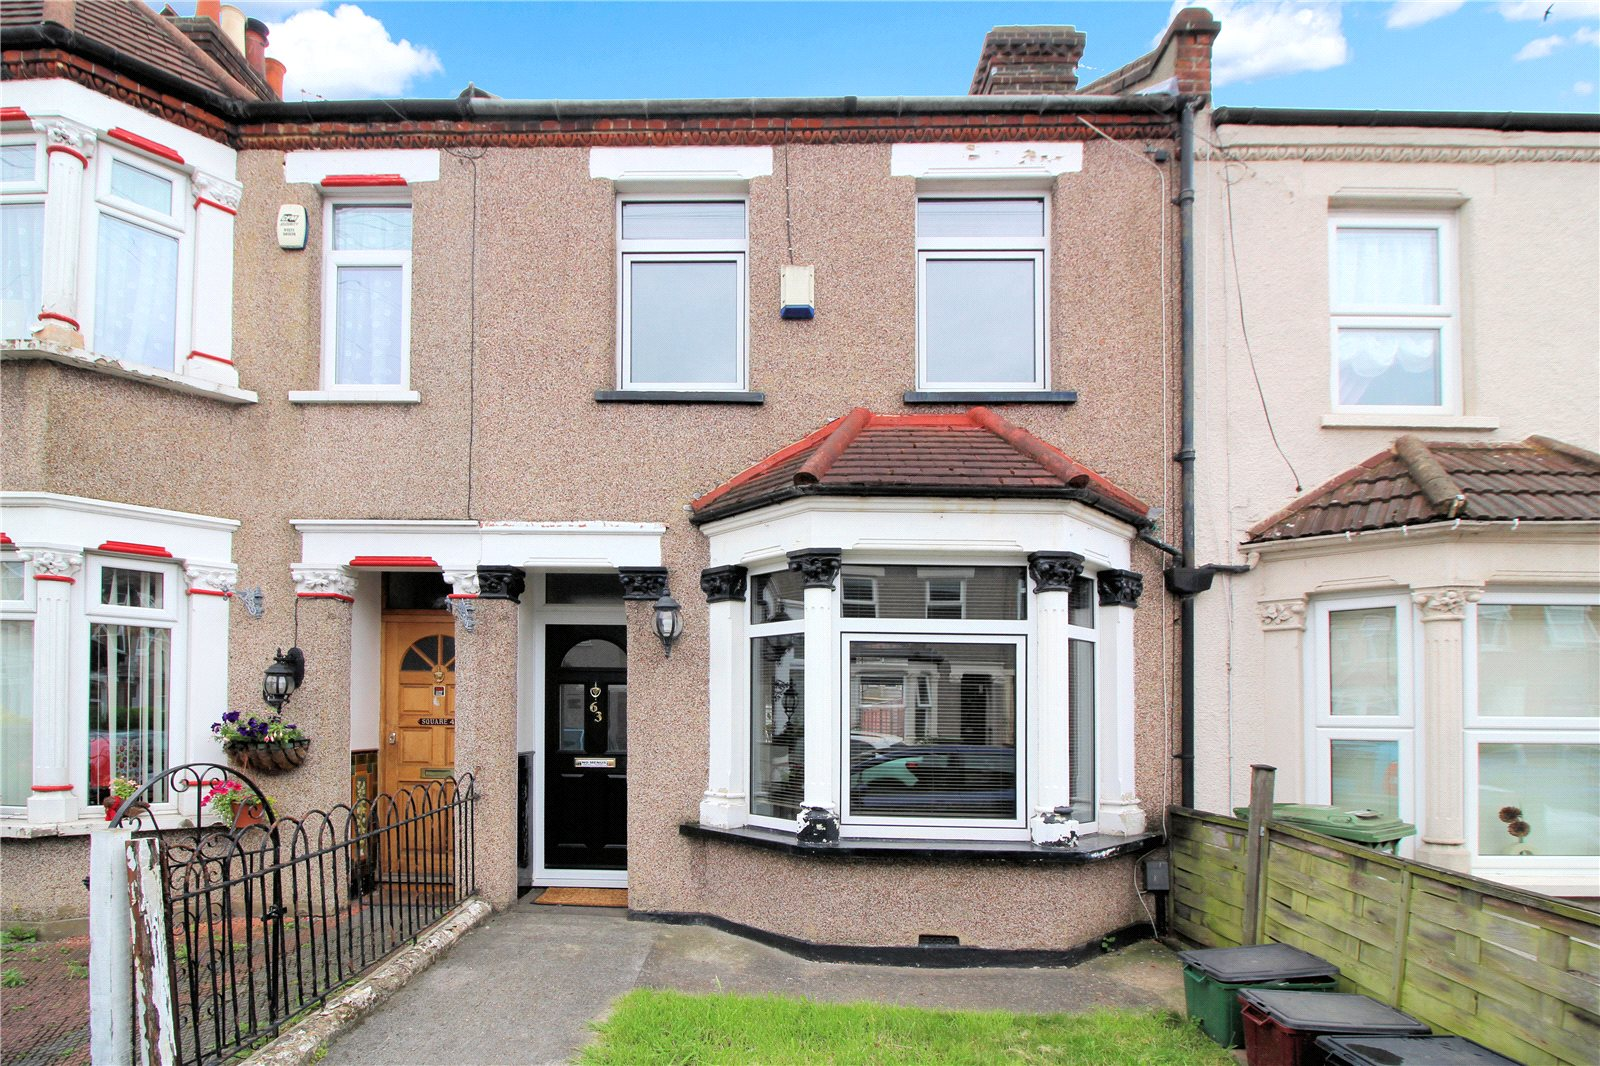 Horsa Road, Northumberland Heath, Kent, DA8